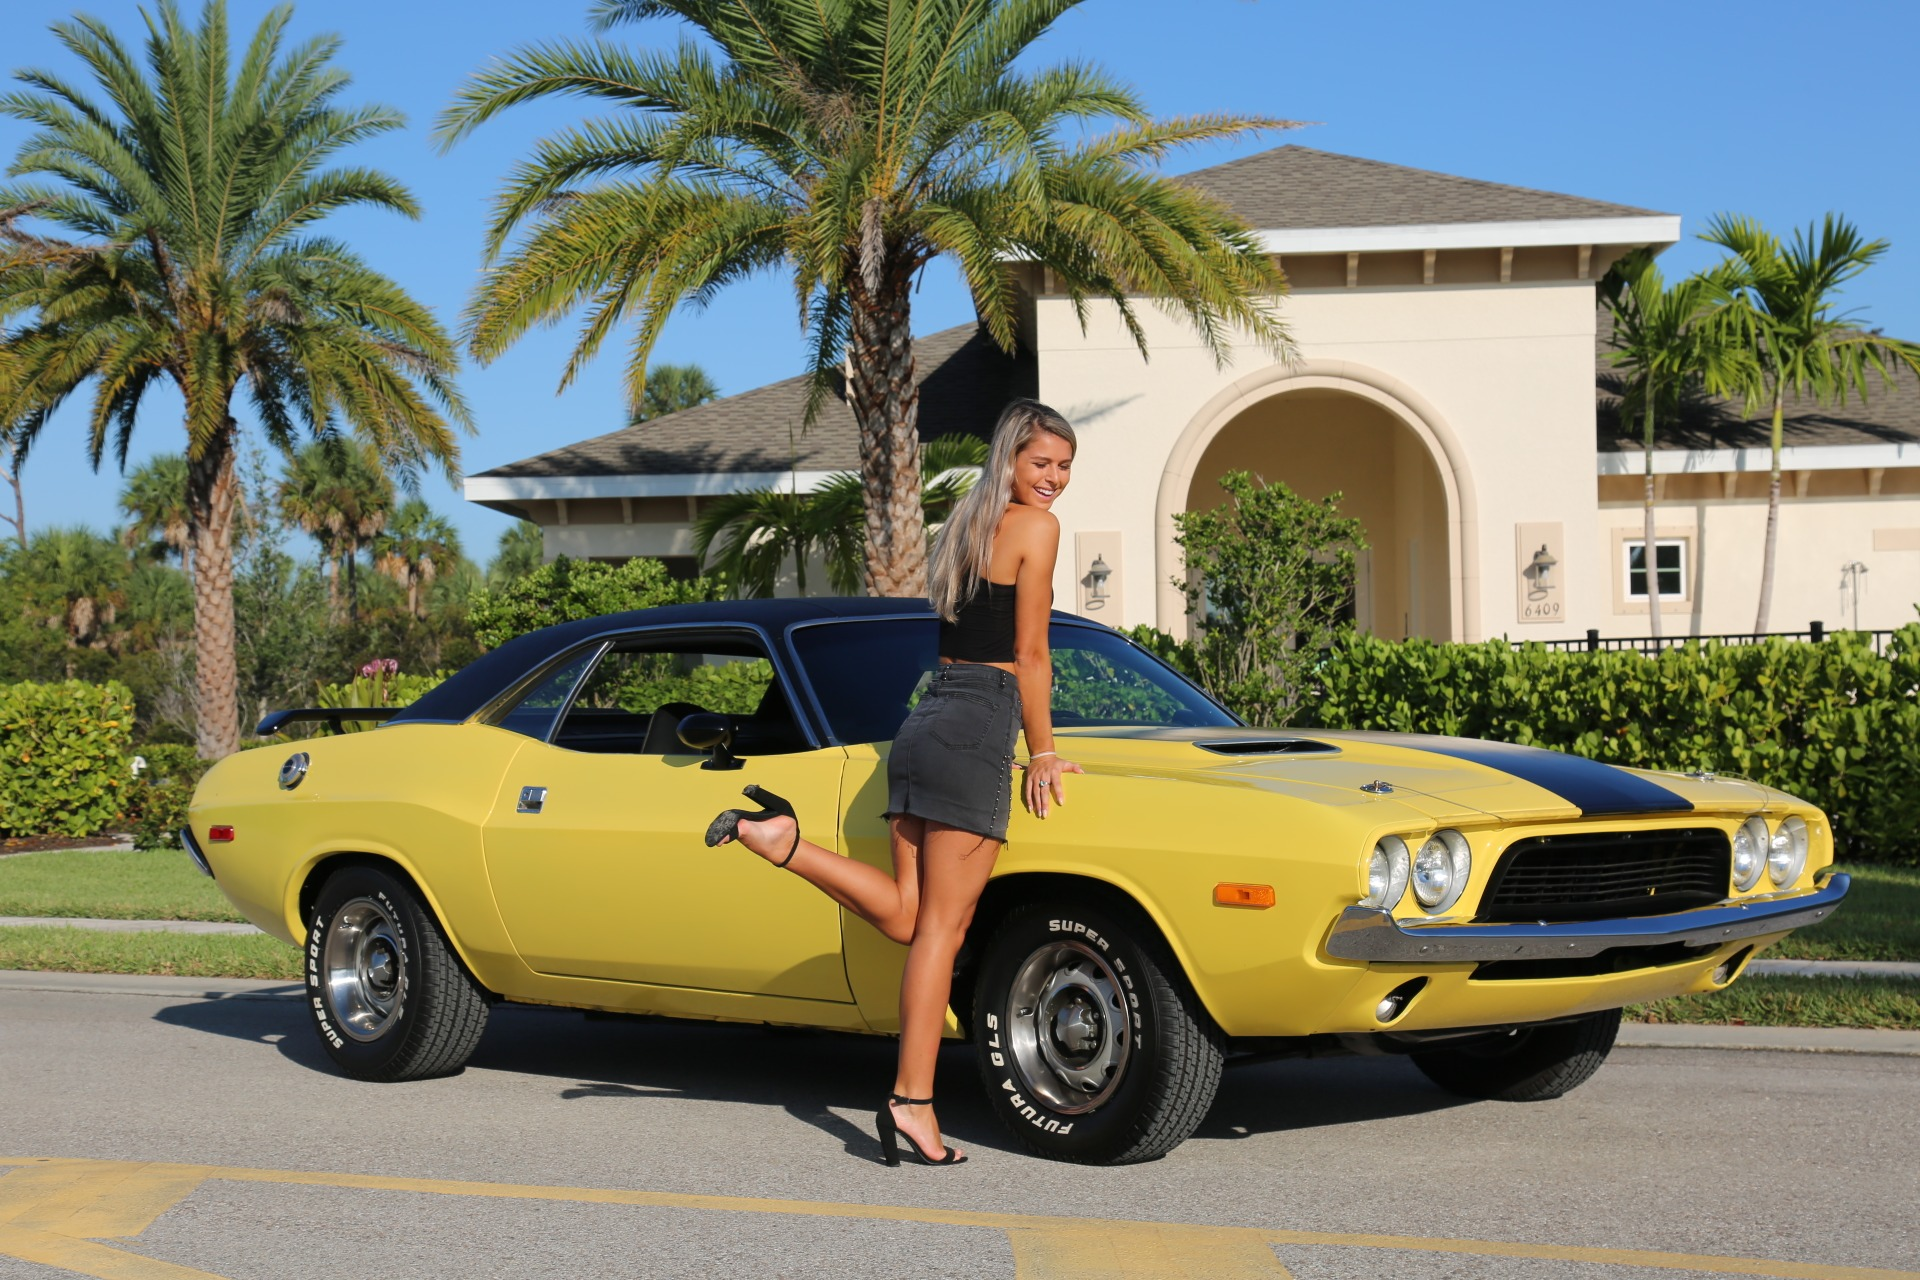 Used 1973 Dodge Challenger 440 V8 for sale Sold at Muscle Cars for Sale Inc. in Fort Myers FL 33912 1